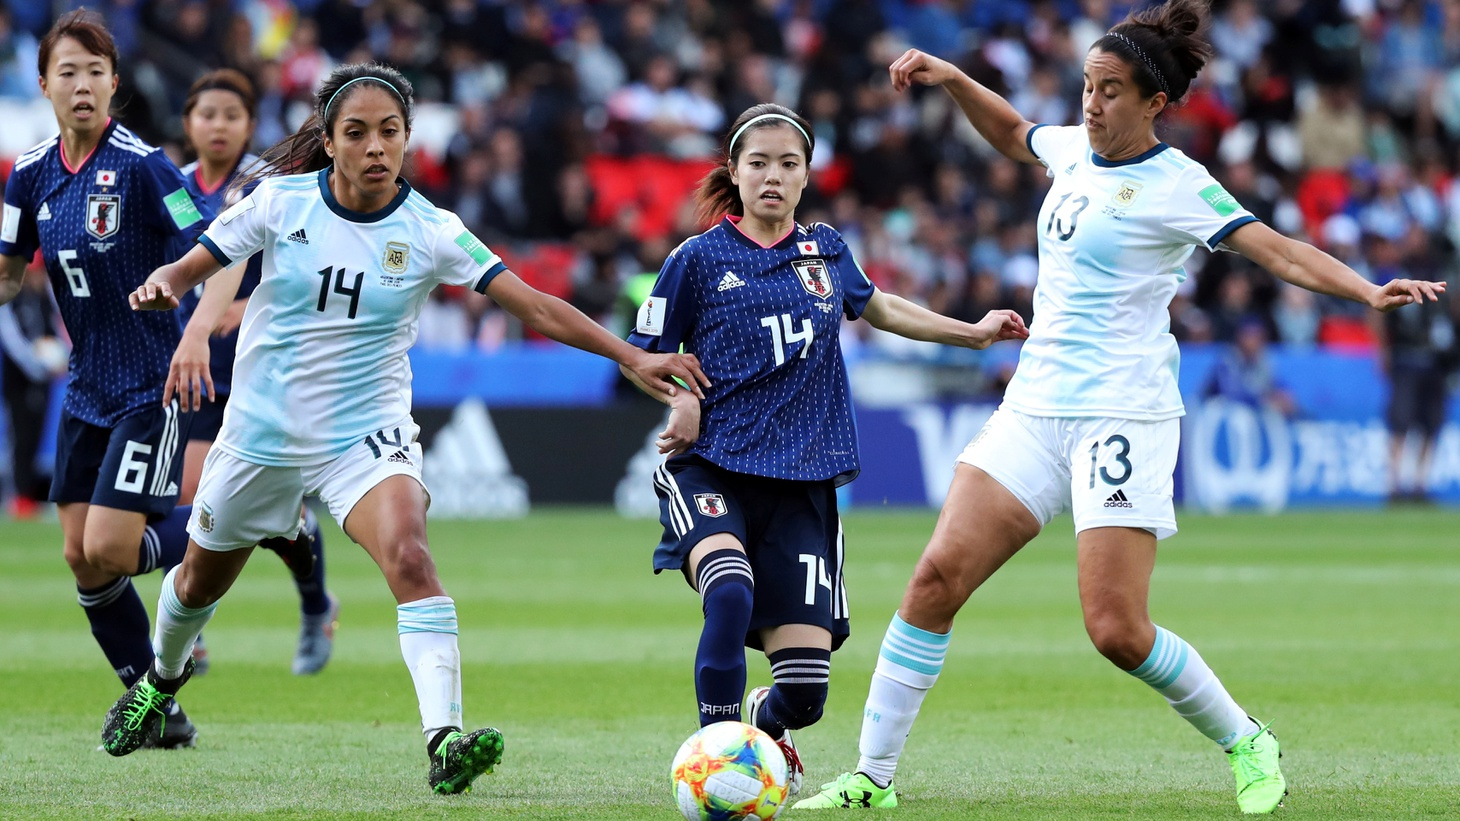 Soccer Football - Women's World Cup - Group D - Argentina v Japan - Parc des Princes, Paris, France - June 10, 2019 Japan's Yui Hasegawa in action with Argentina's Miriam Mayorga and Virginia Gomez.